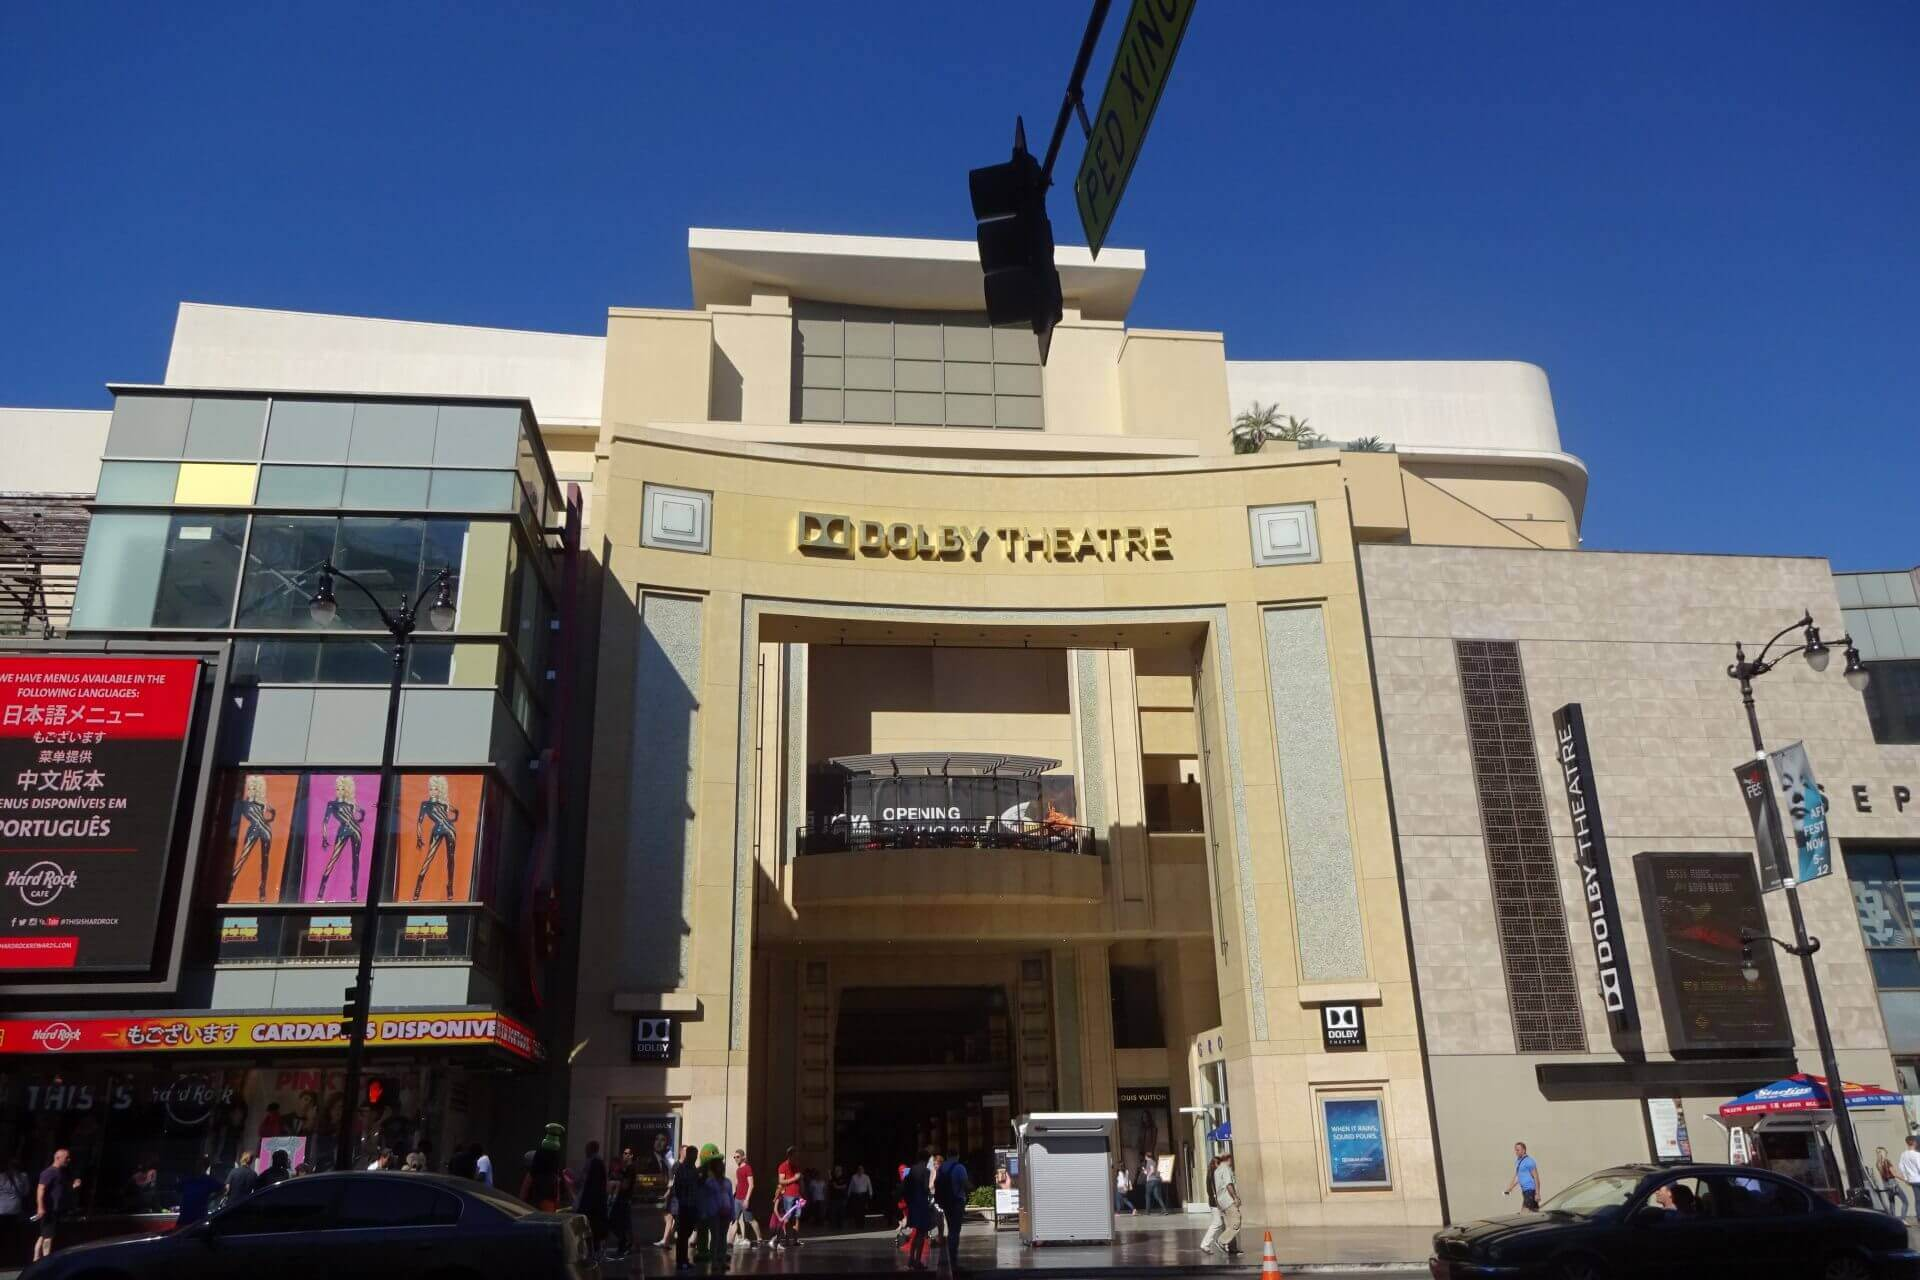 Dolby Theater in Hollywood. Bilder und Eindrücke aus Los Angeles und Hollywood, Kalifornien, USA.